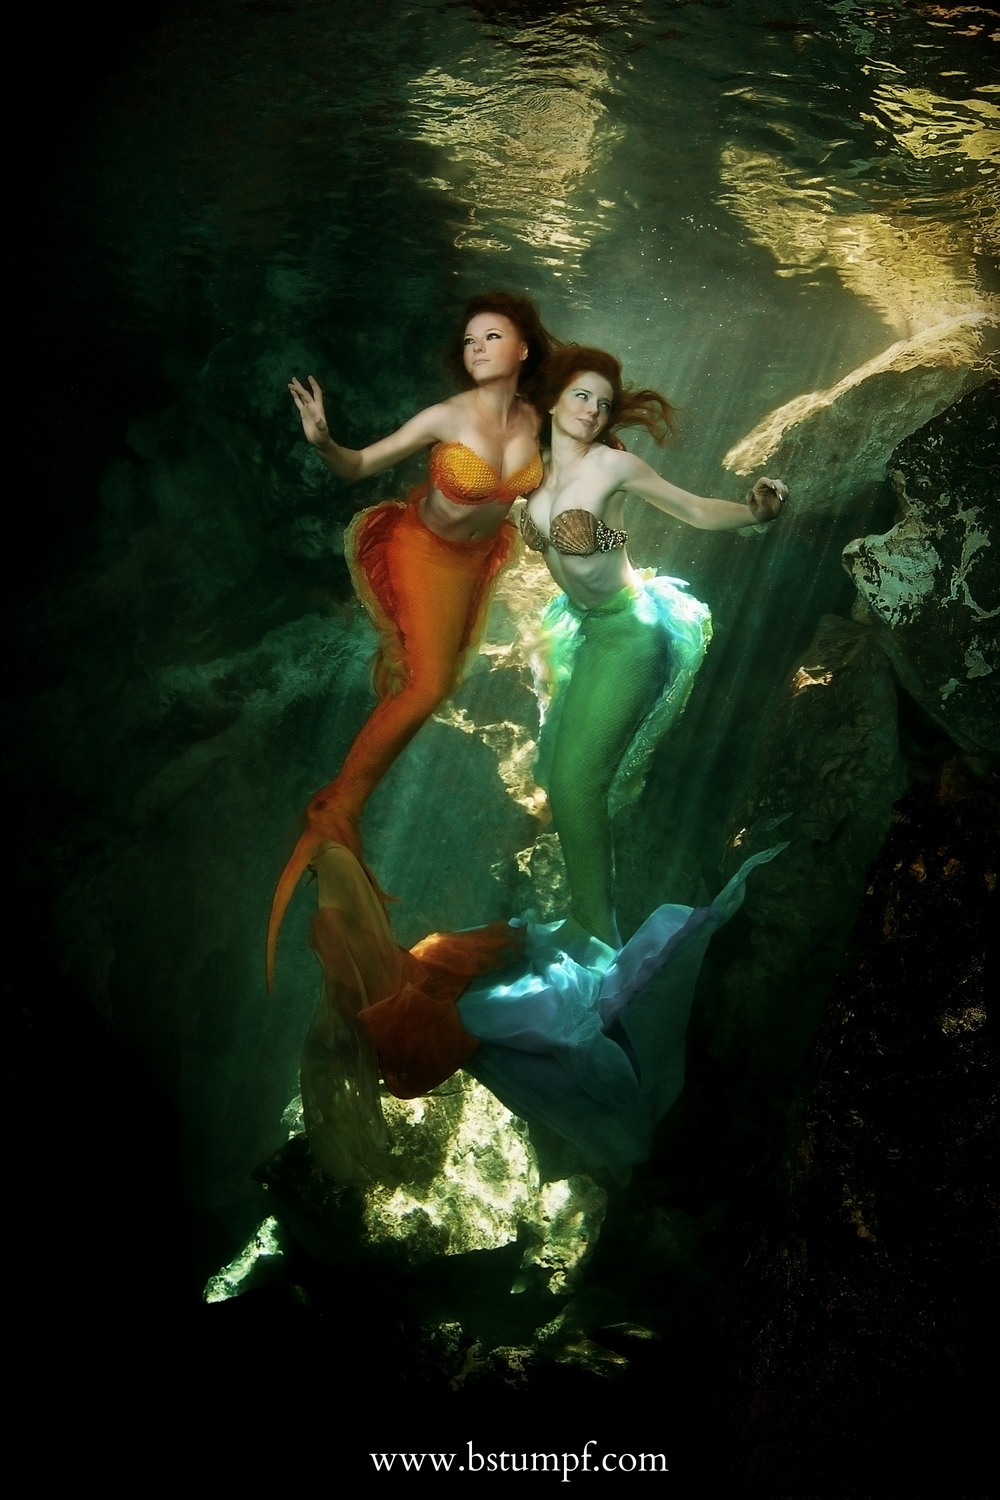 Mermaid Duo Image.jpg